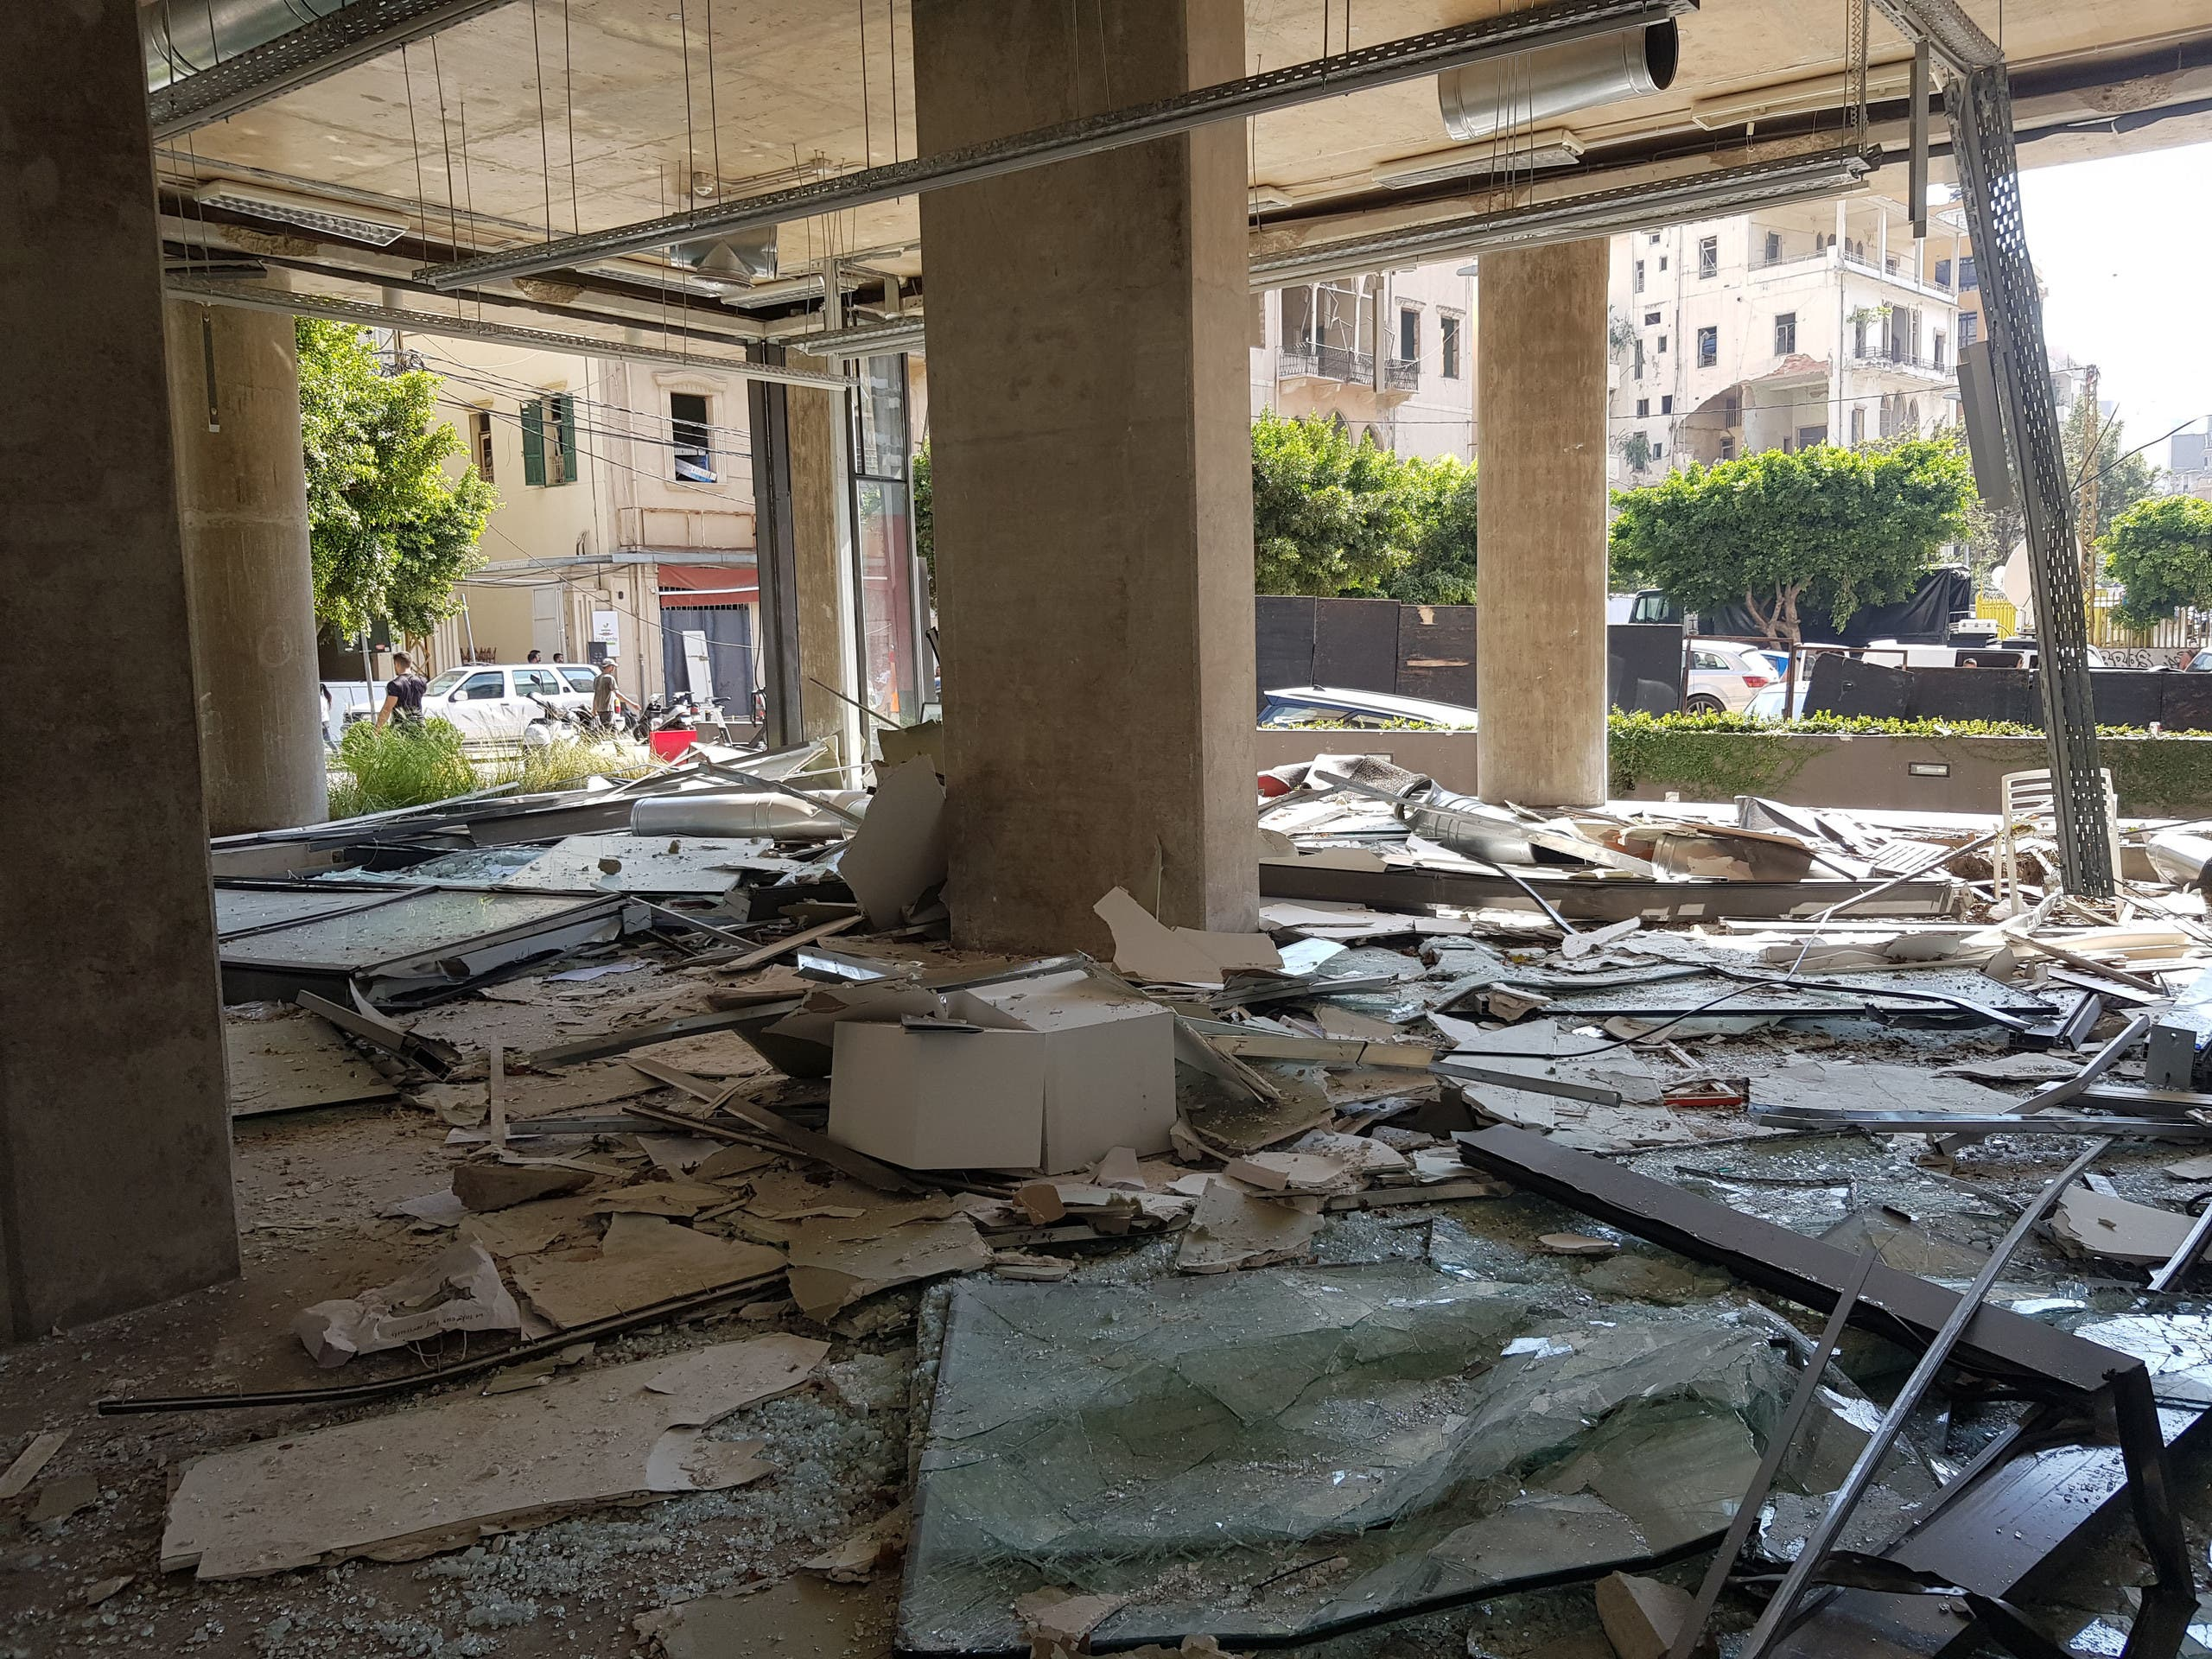 Galerie Tanit after the explosion in Beirut, Lebanon, on August 4, showing blown out walls and glass. (Photo courtesy of Abed Al Kadiri.)